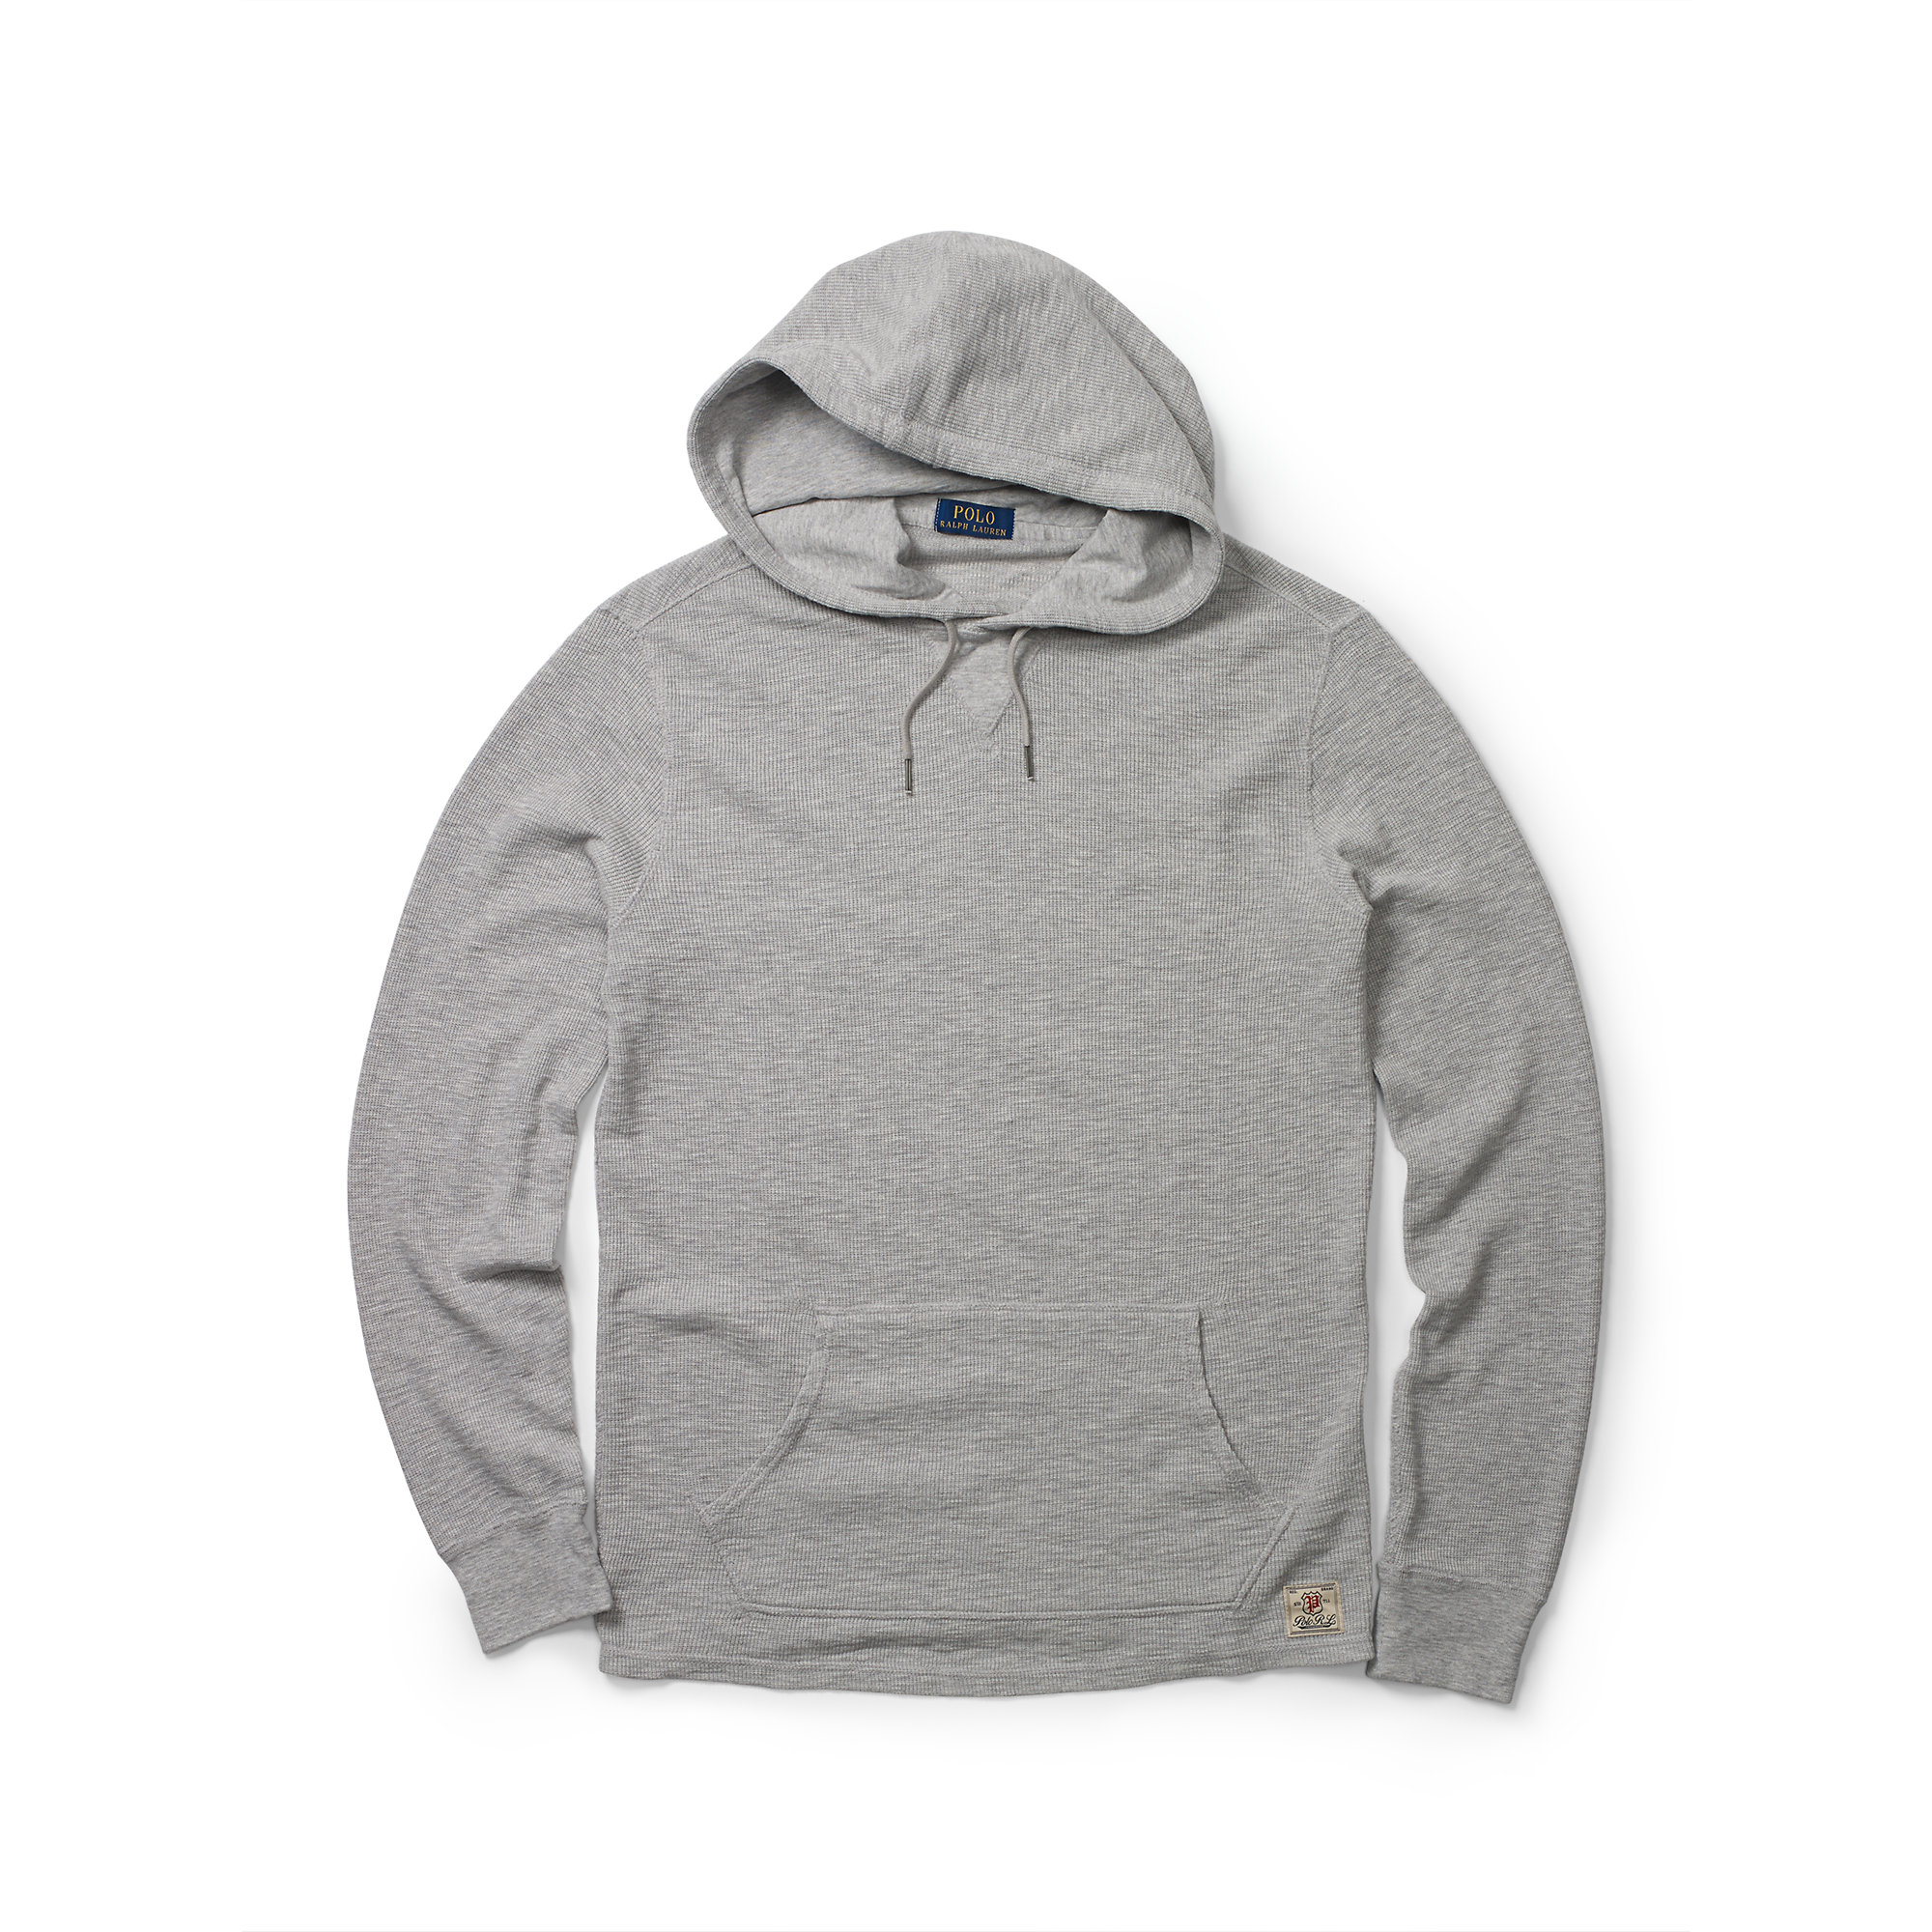 502cfdfd1 Polo Ralph Lauren Waffle-knit Cotton Hoodie in Gray for Men - Lyst